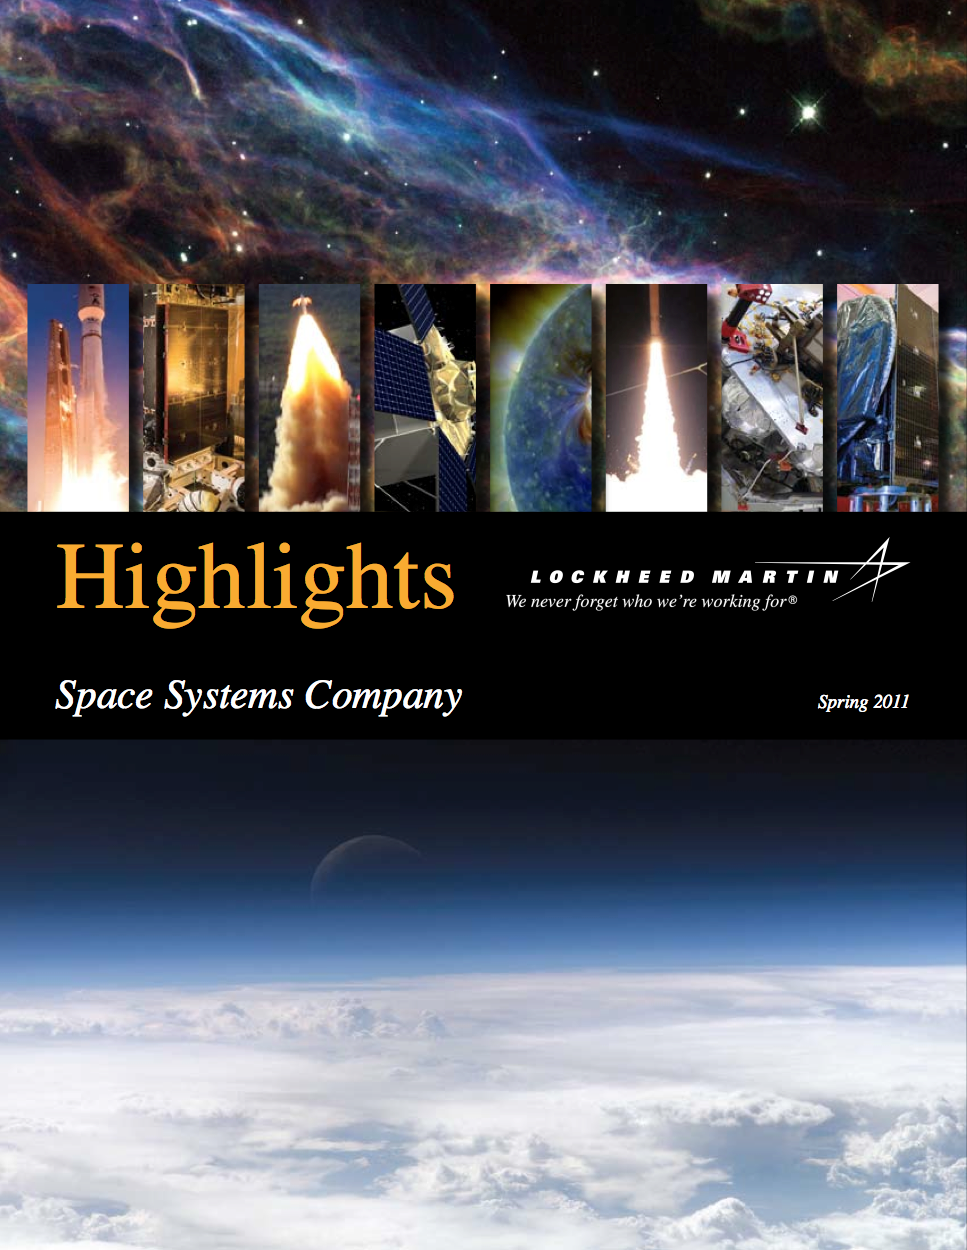 2011 edition of the annual publications called Highlights.